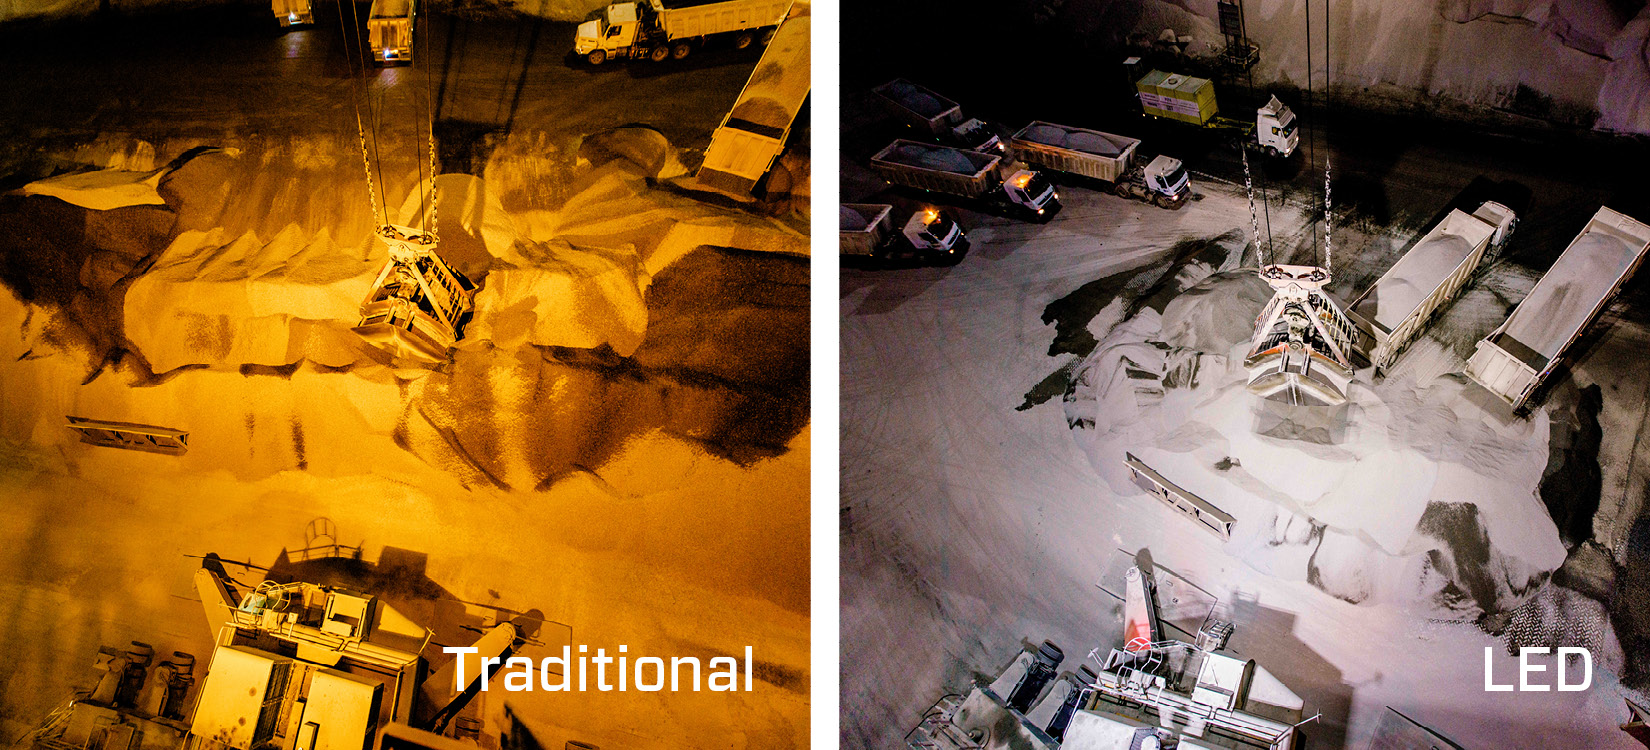 The crane working area at RAK Ports before and after LED light